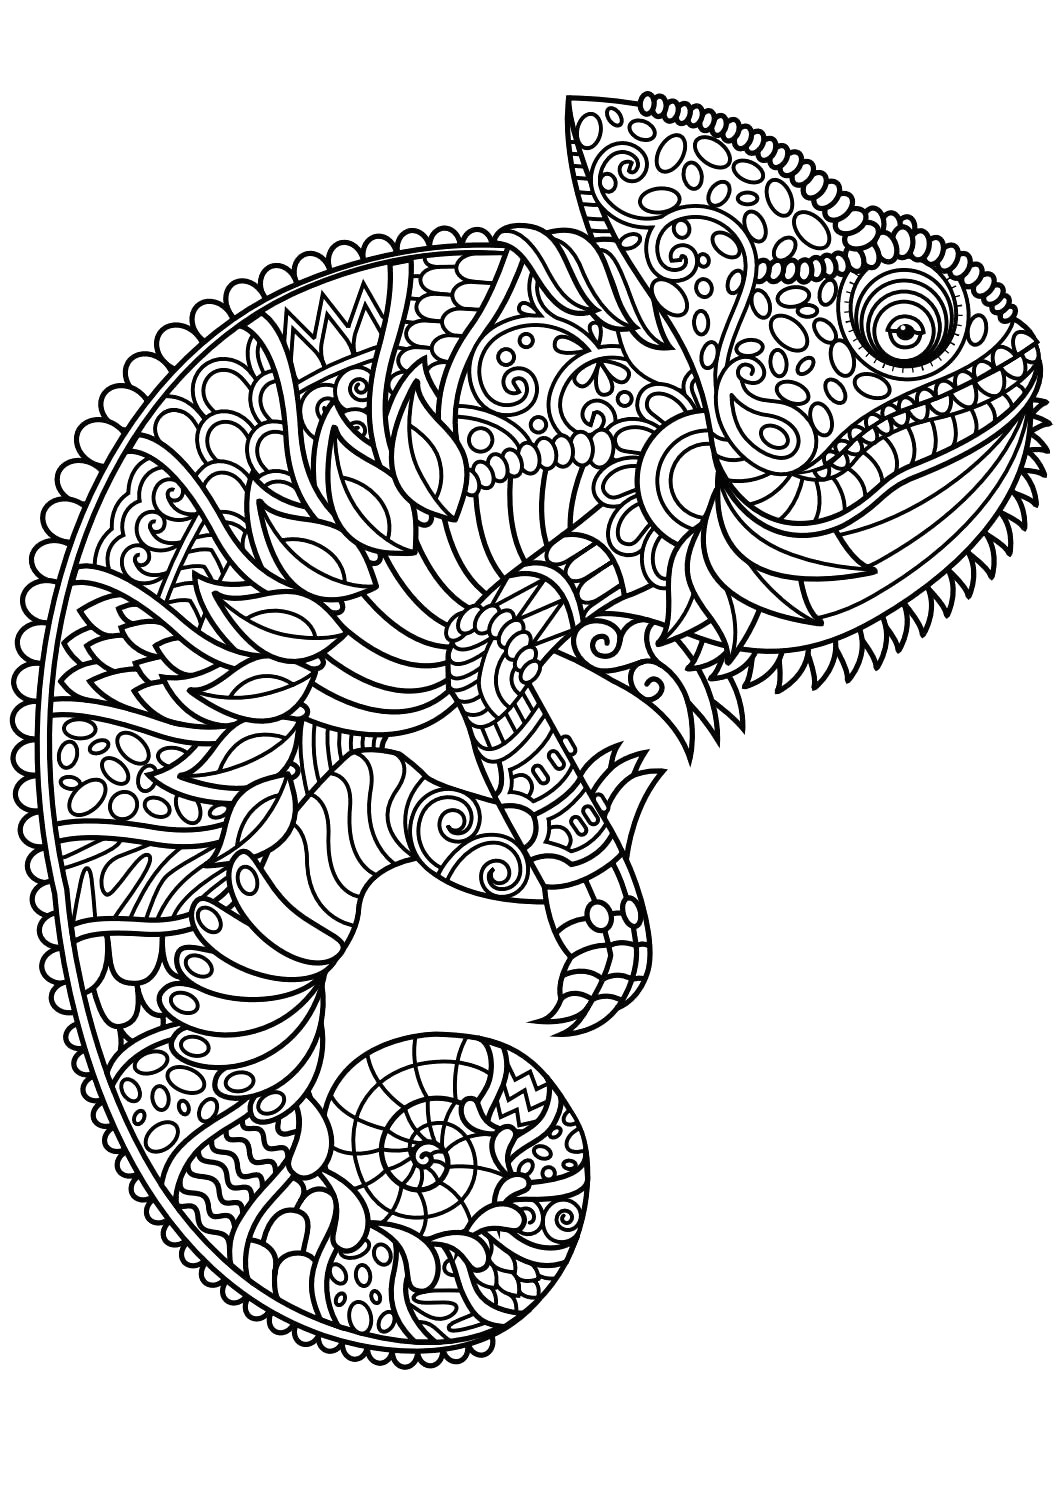 coloring pages of dory inspirational cute mandala coloring pages best od dog coloring pages free